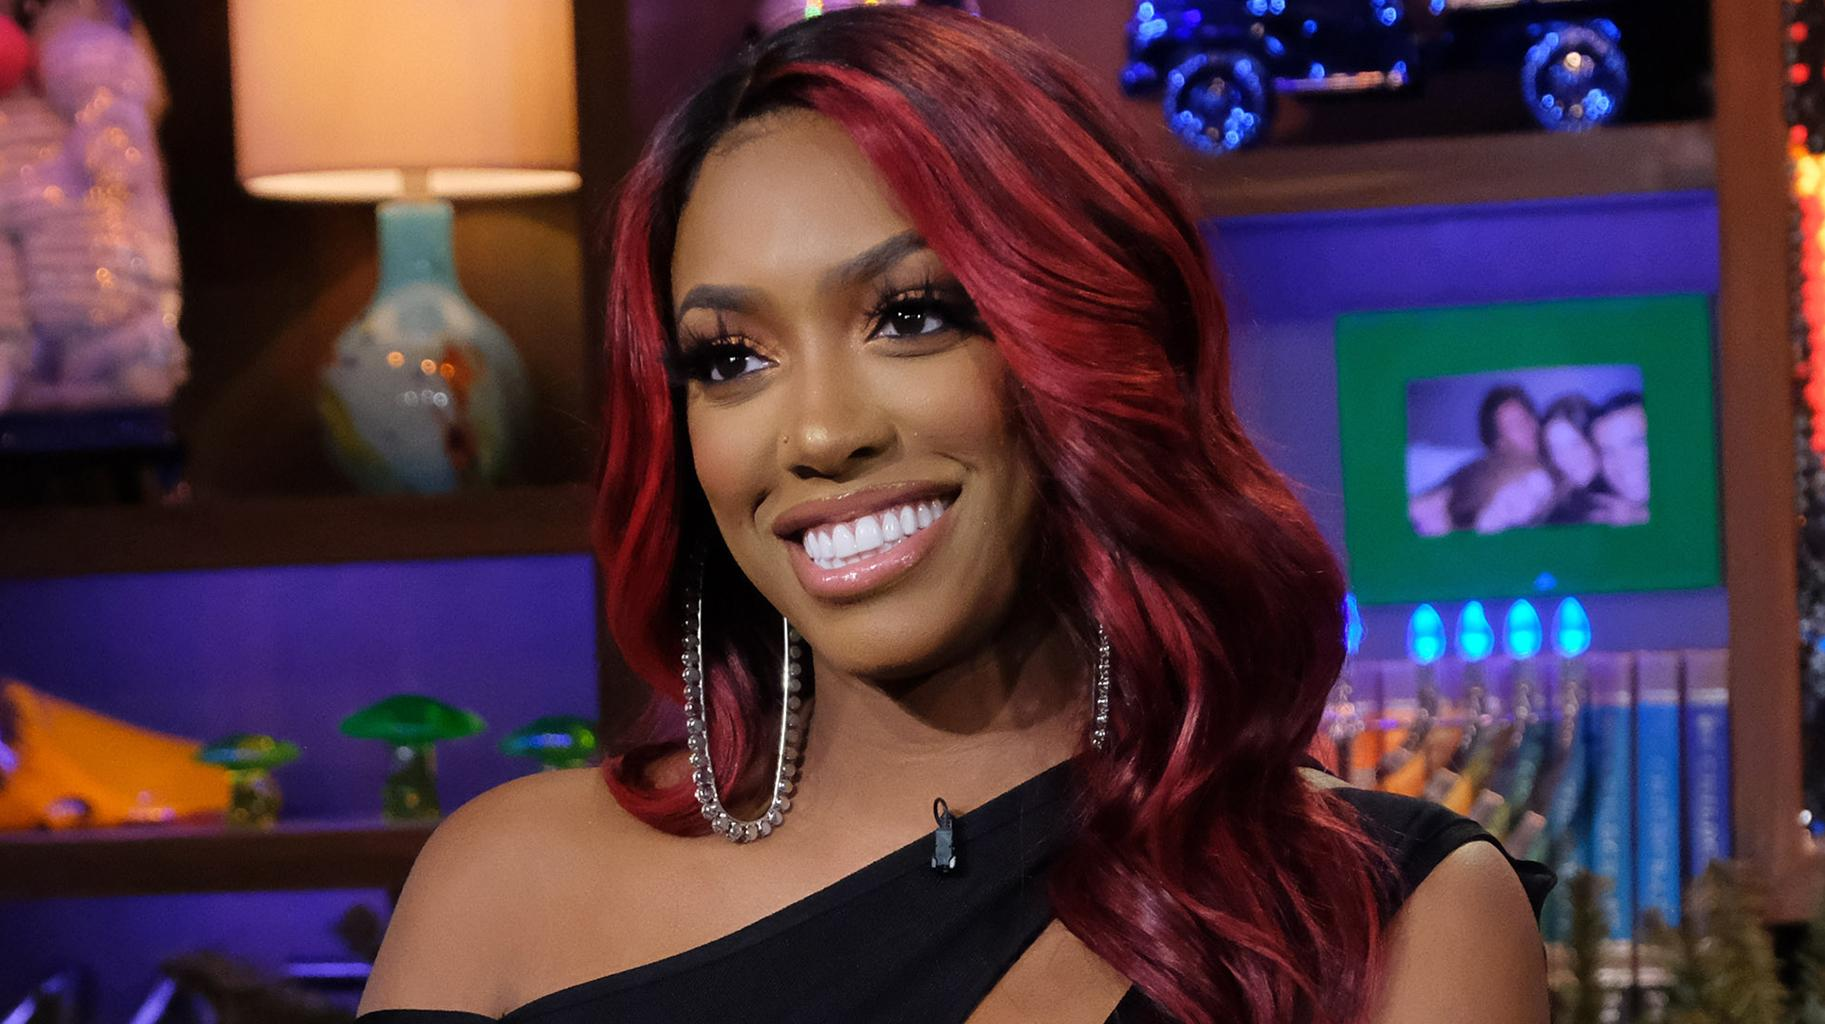 Porsha Williams Gives Fans Hope With These Photos During Such Troubling Times We Live In